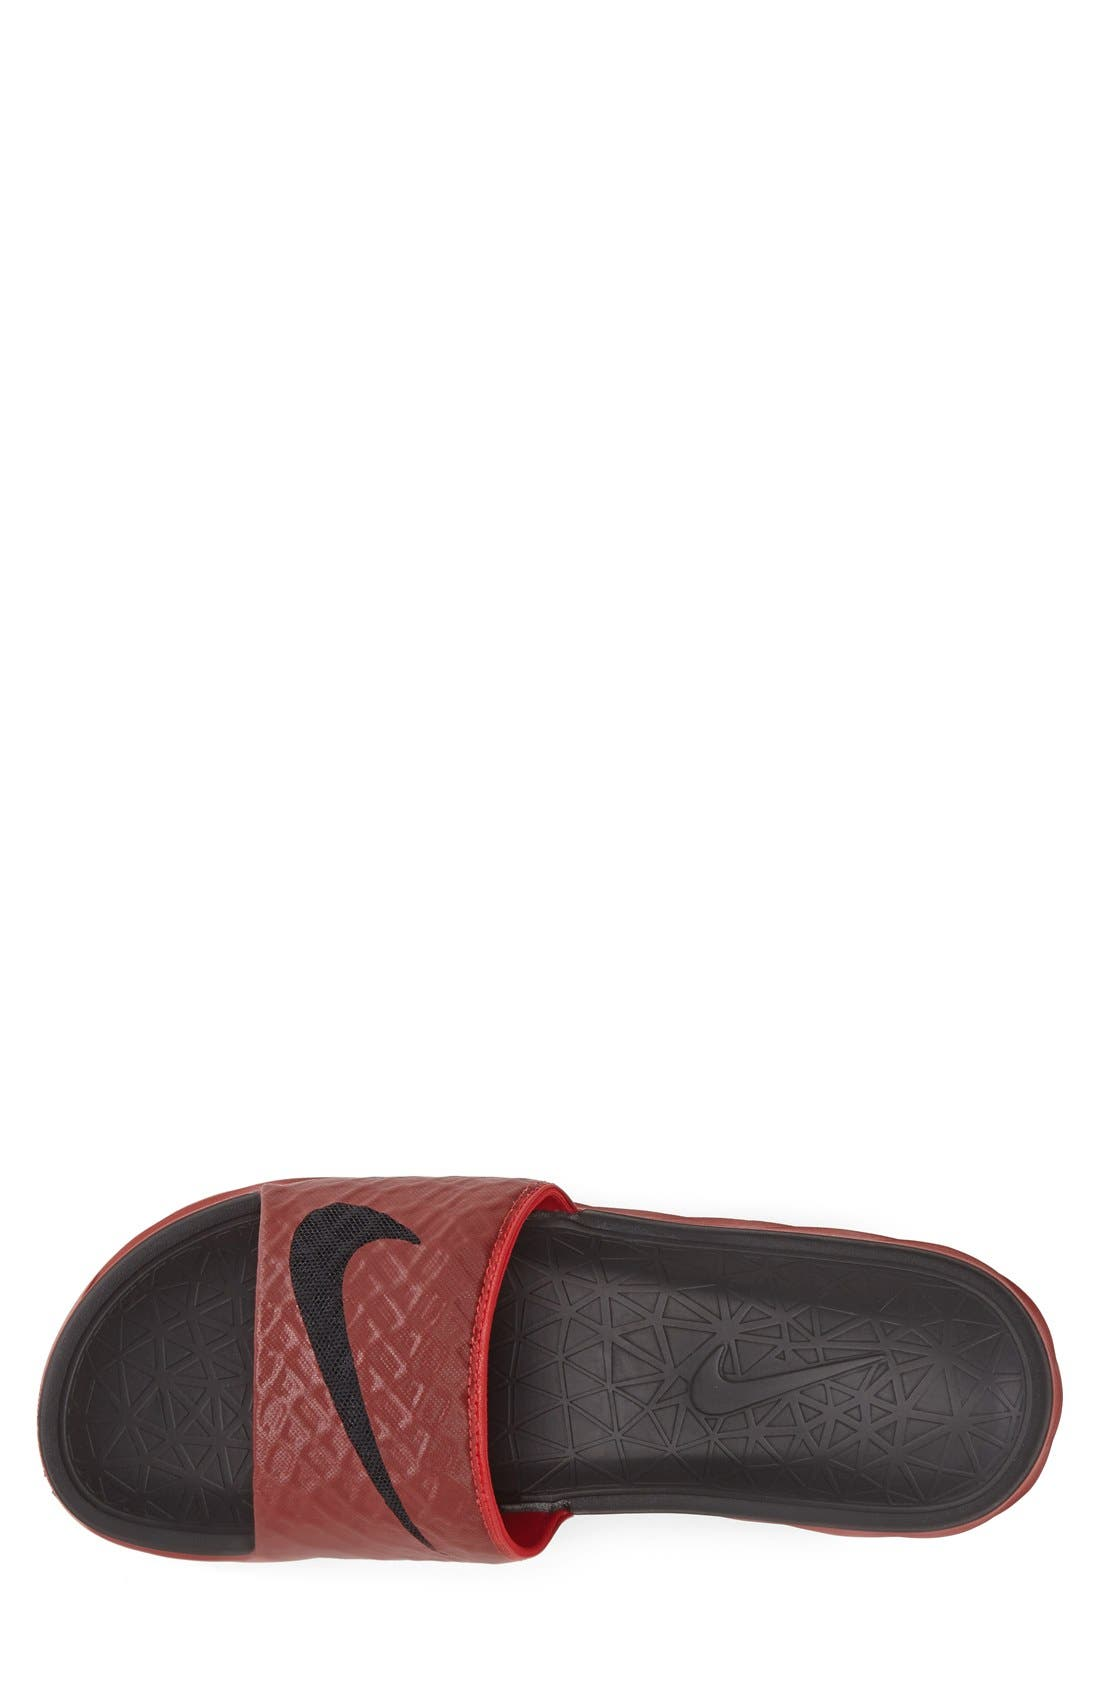 'Benassi Solarsoft 2' Slide Sandal,                             Alternate thumbnail 3, color,                             University Red/ Black